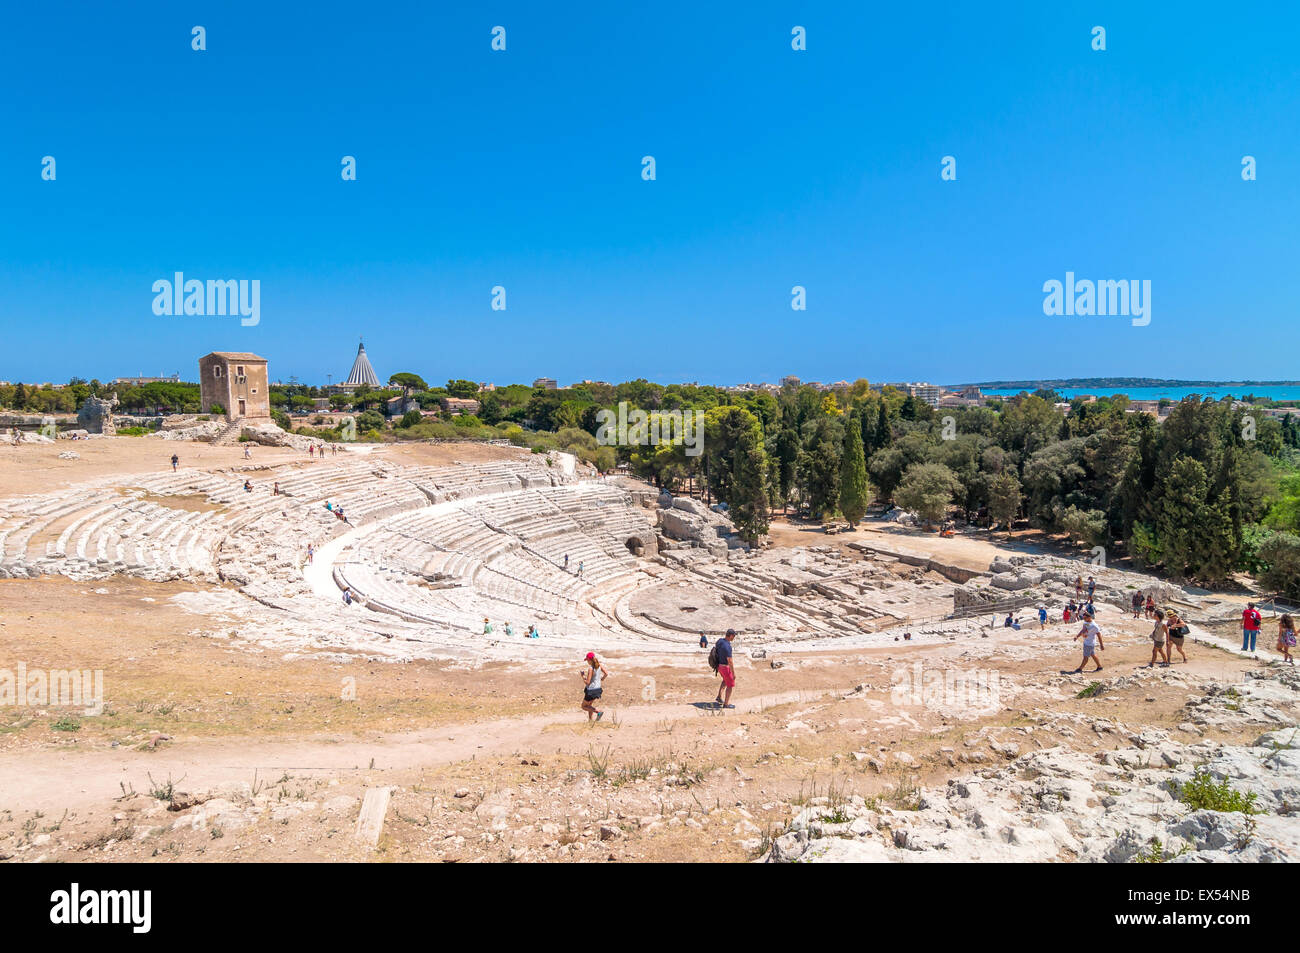 SYRACUSE, ITALY - AUGUST 18, 2014: tourists visit ancient Greek theater in Syracuse, Italy. - Stock Image